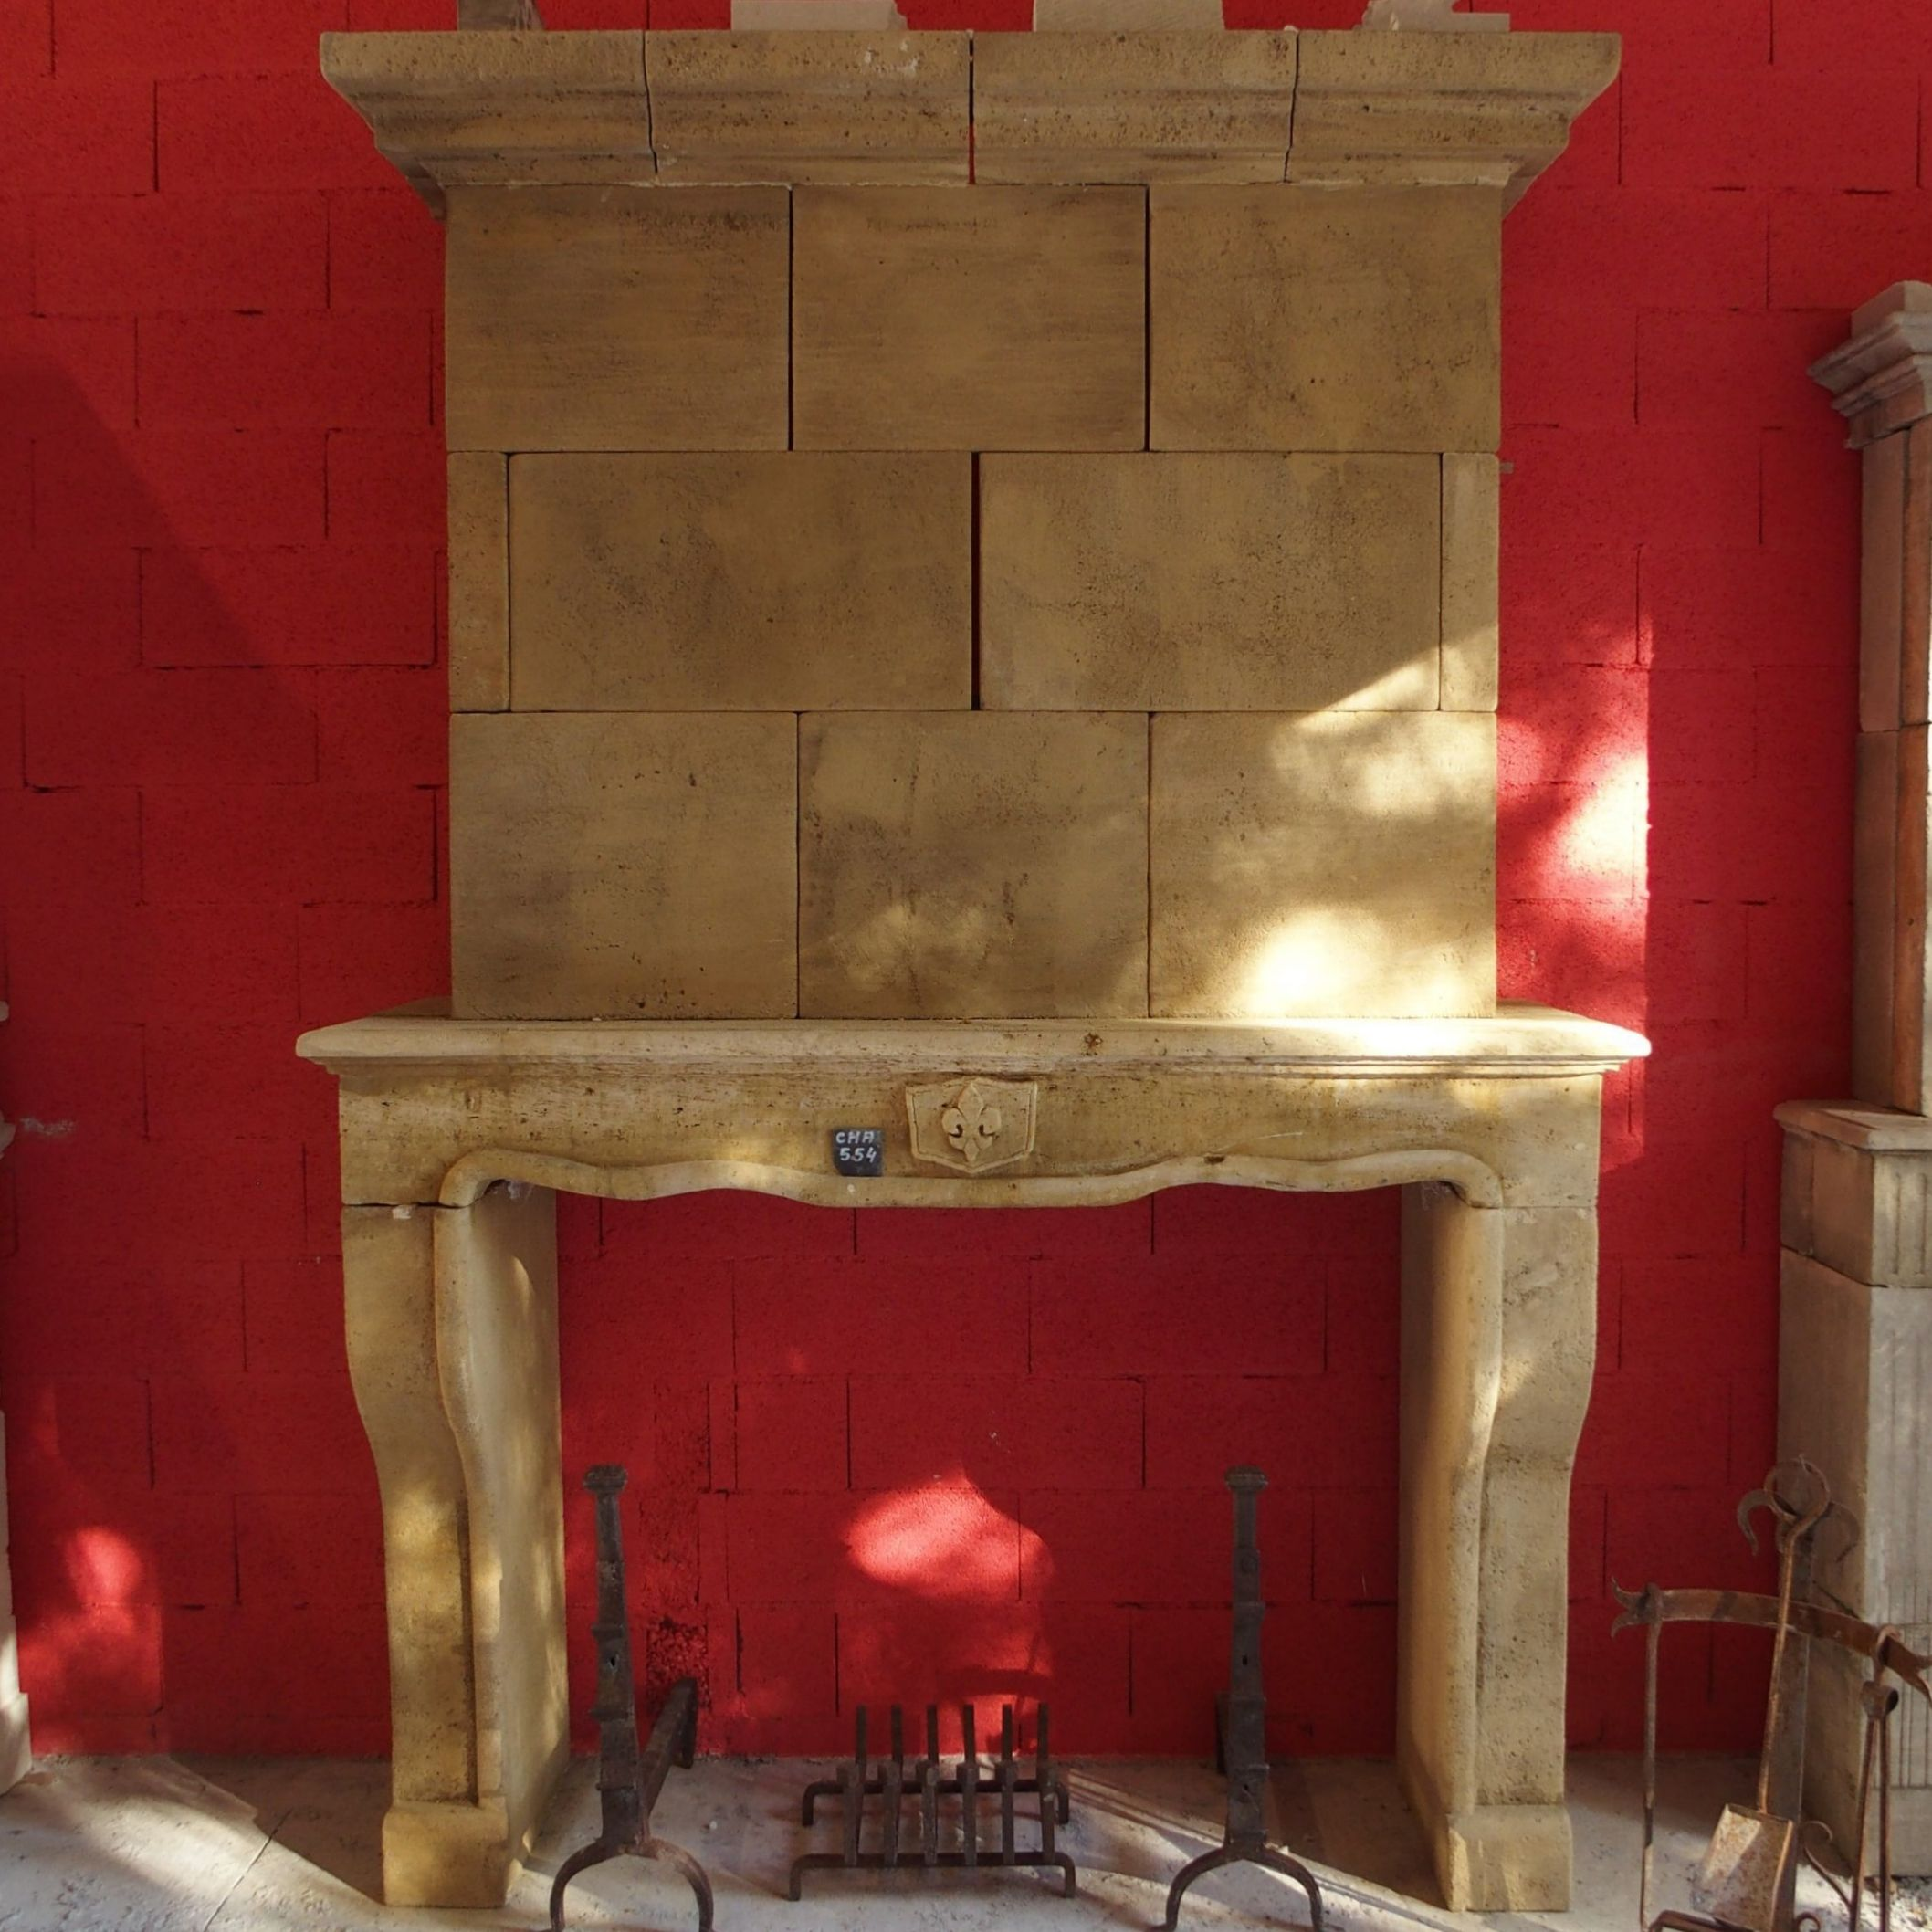 Superb old fireplace - a traditional fireplace dating from Louis XV reign.